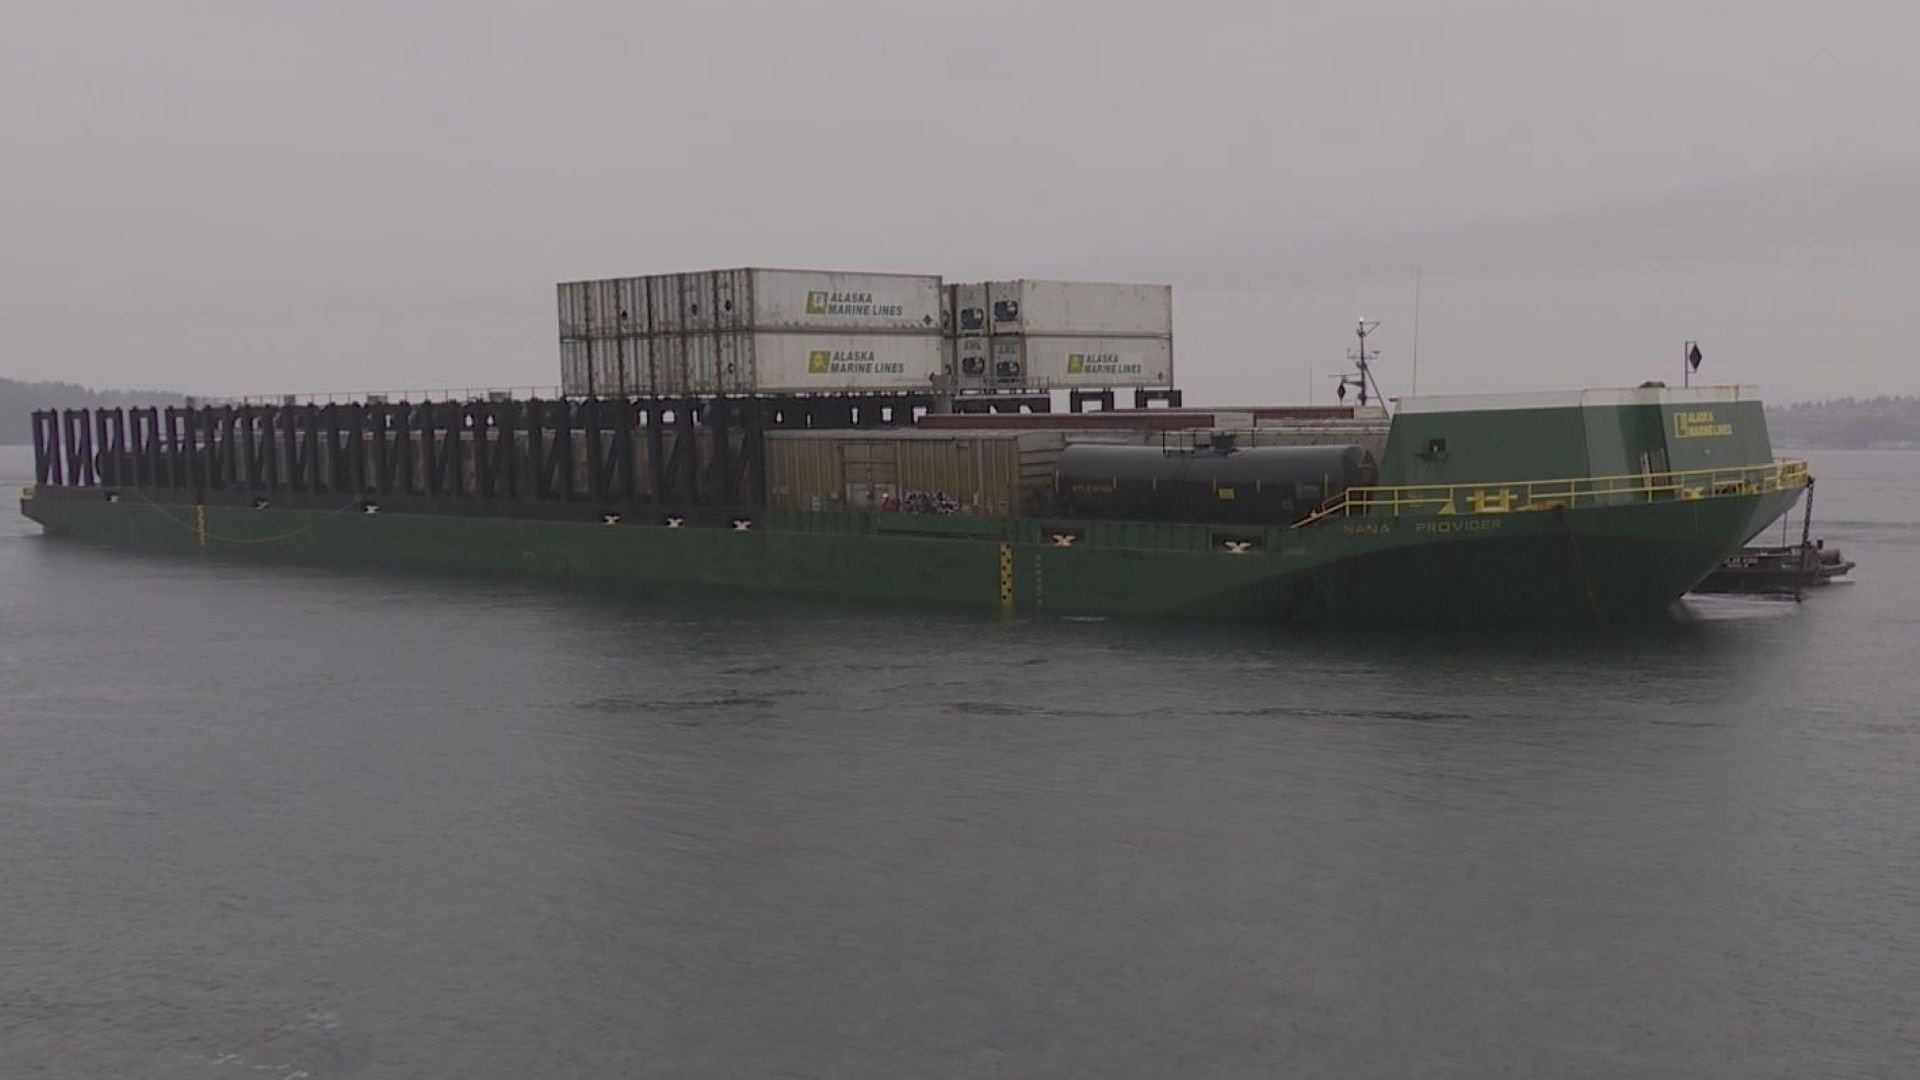 New developments in grounded barge on B.C. coast